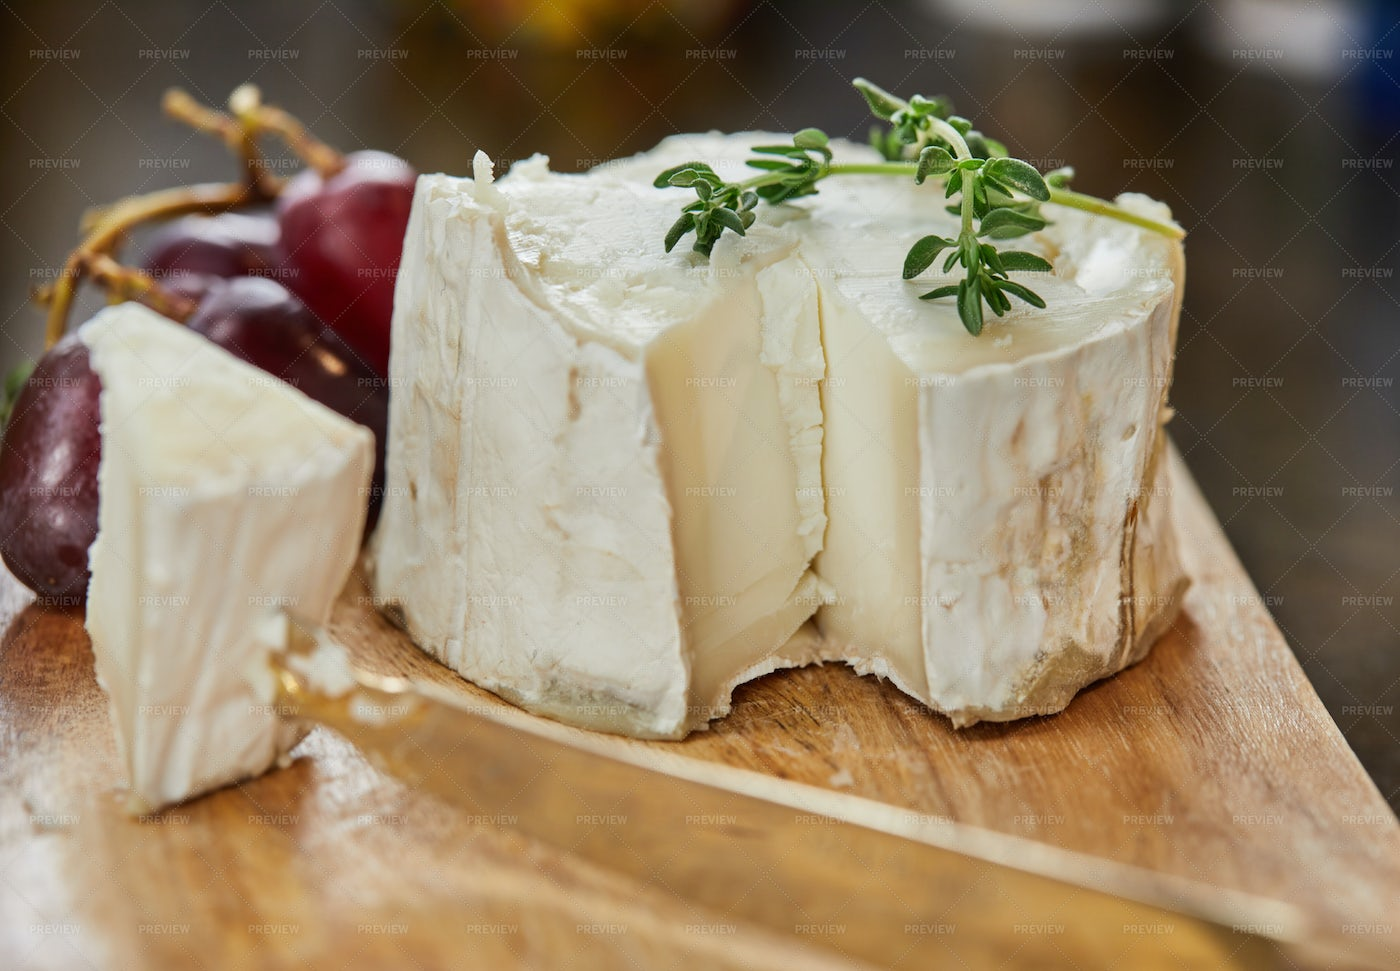 French Cheeses With Grapes: Stock Photos